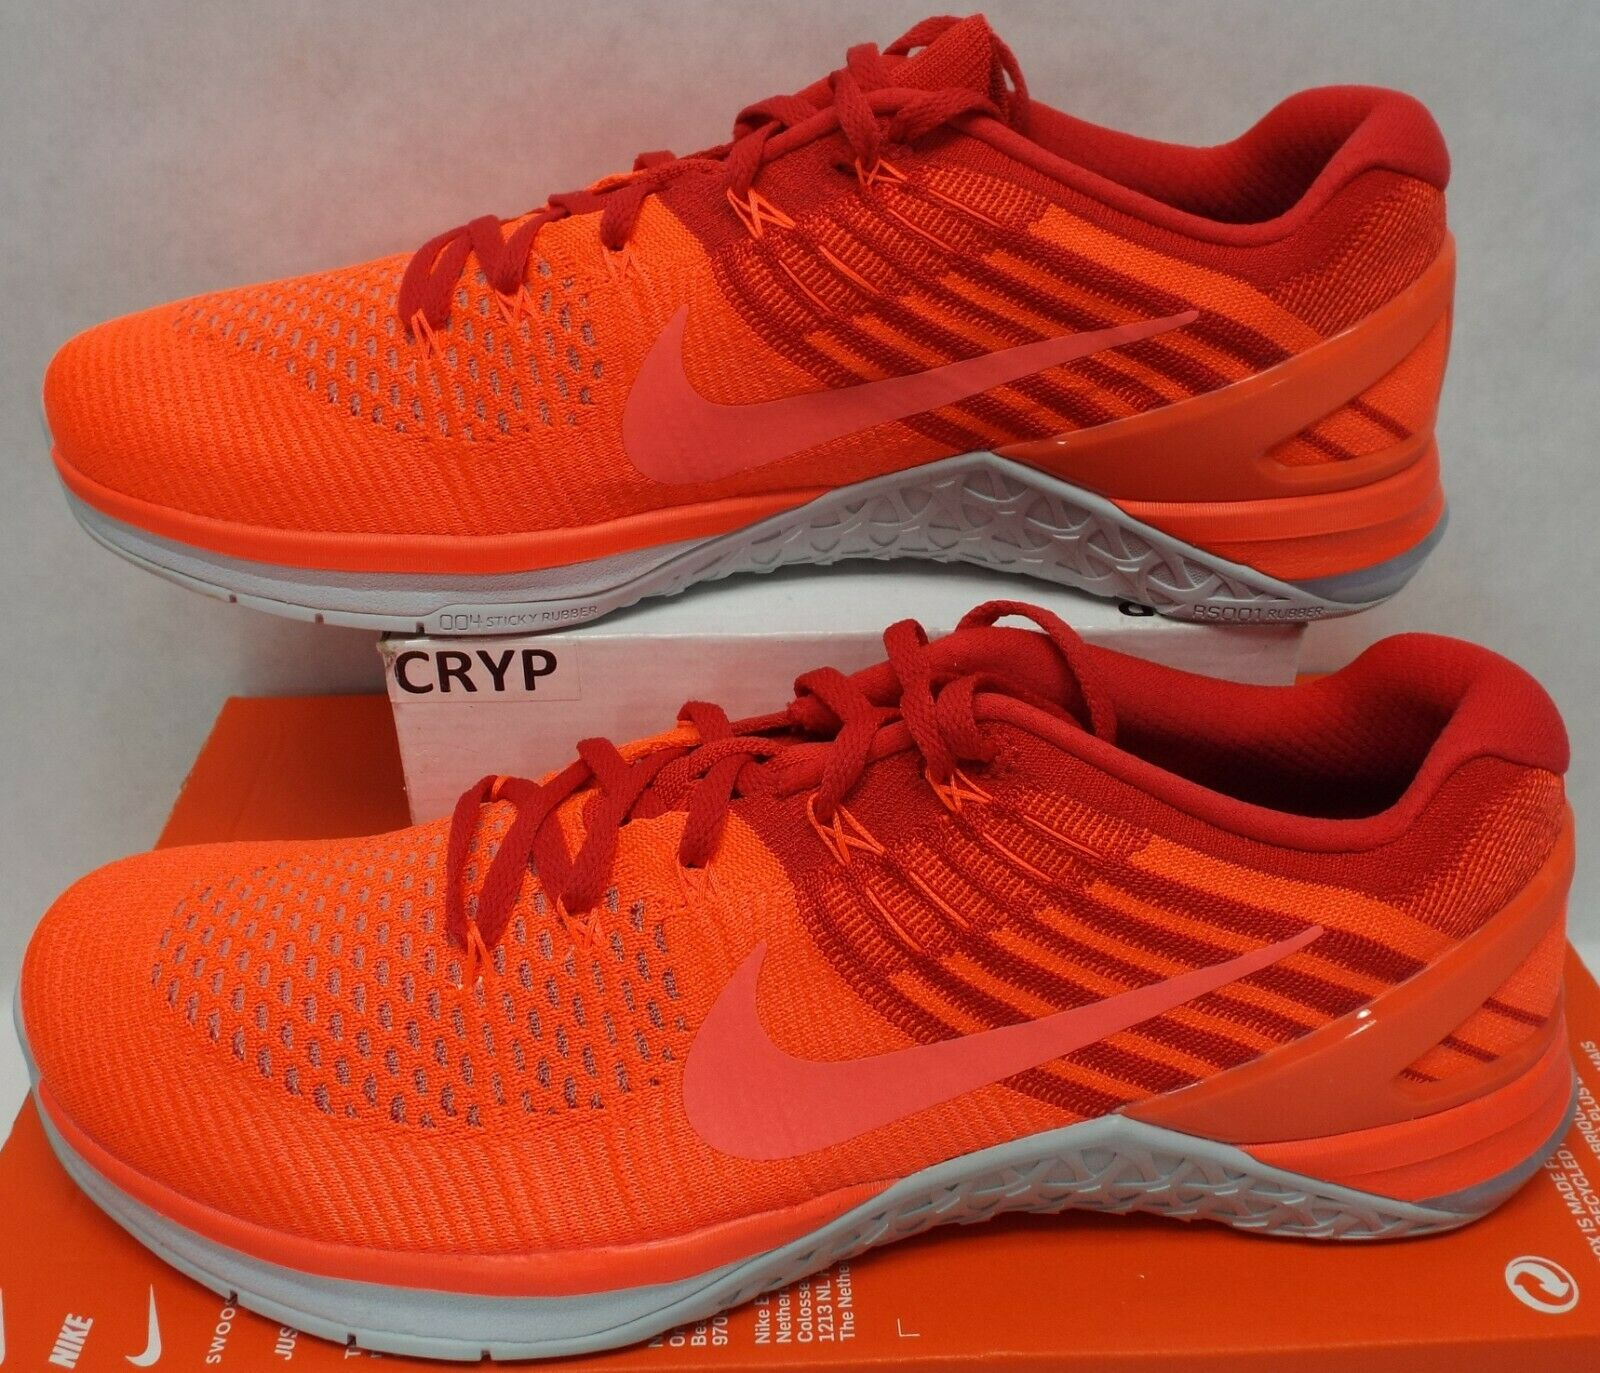 Mens 11.5 NIKE Metcon DSX Flyknit Total Crimson Hyp orange shoes  160 852930-800